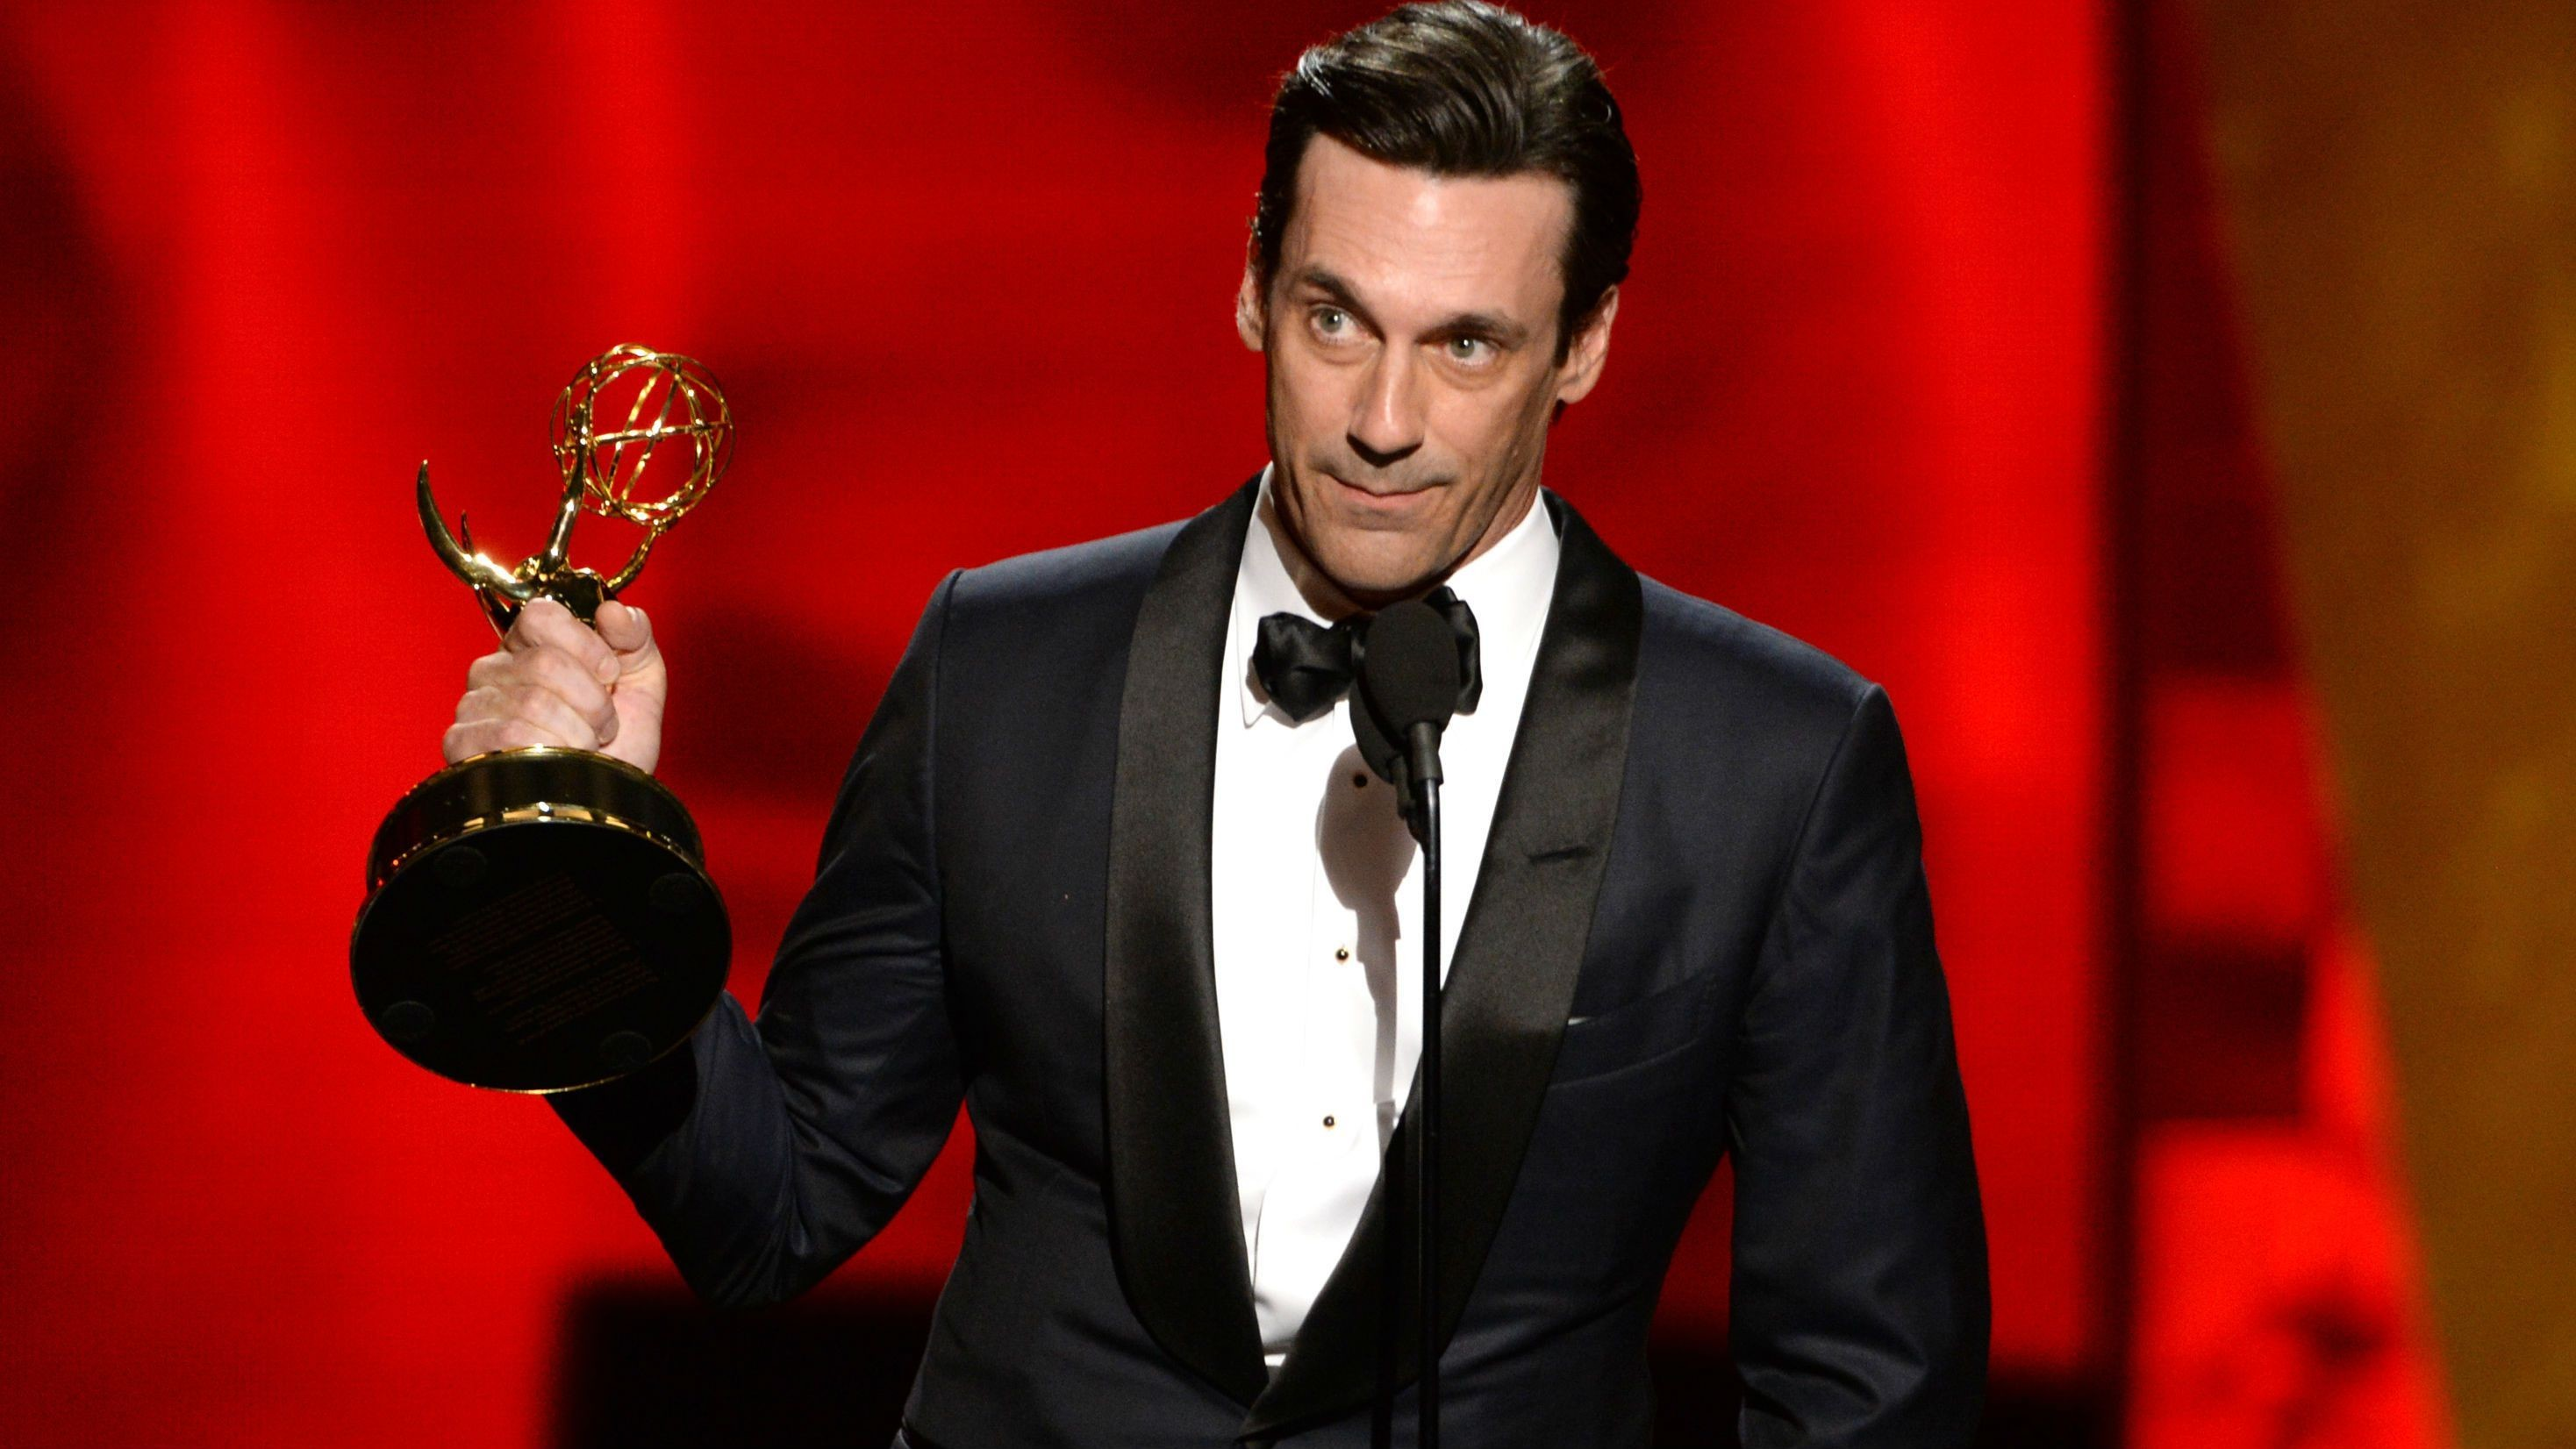 Res: 2936x1652, Jon Hamm Mad Men Emmy